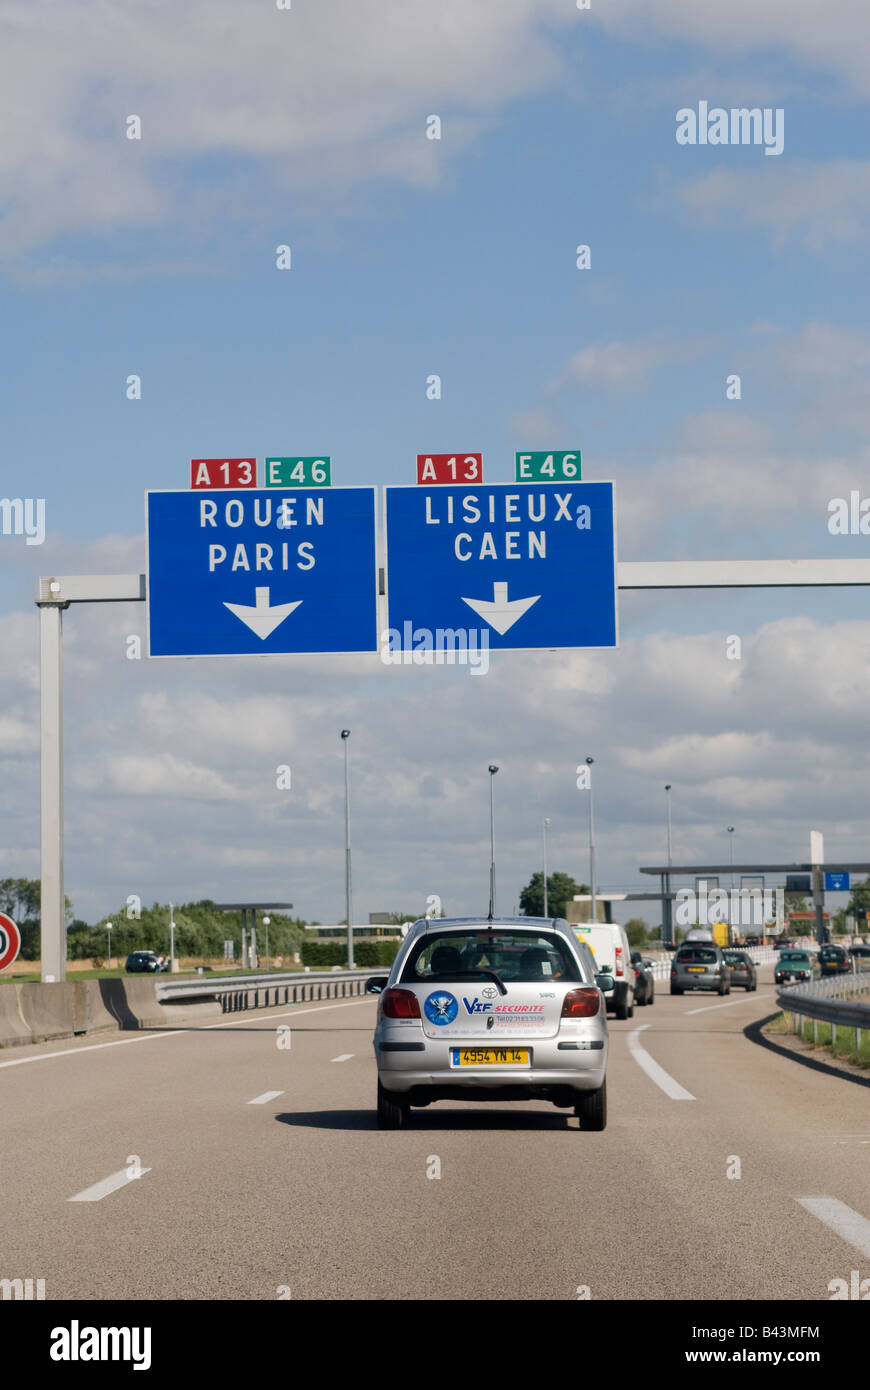 traffic driving on the a13 autoroute in normandy france stock photo royalty free image. Black Bedroom Furniture Sets. Home Design Ideas